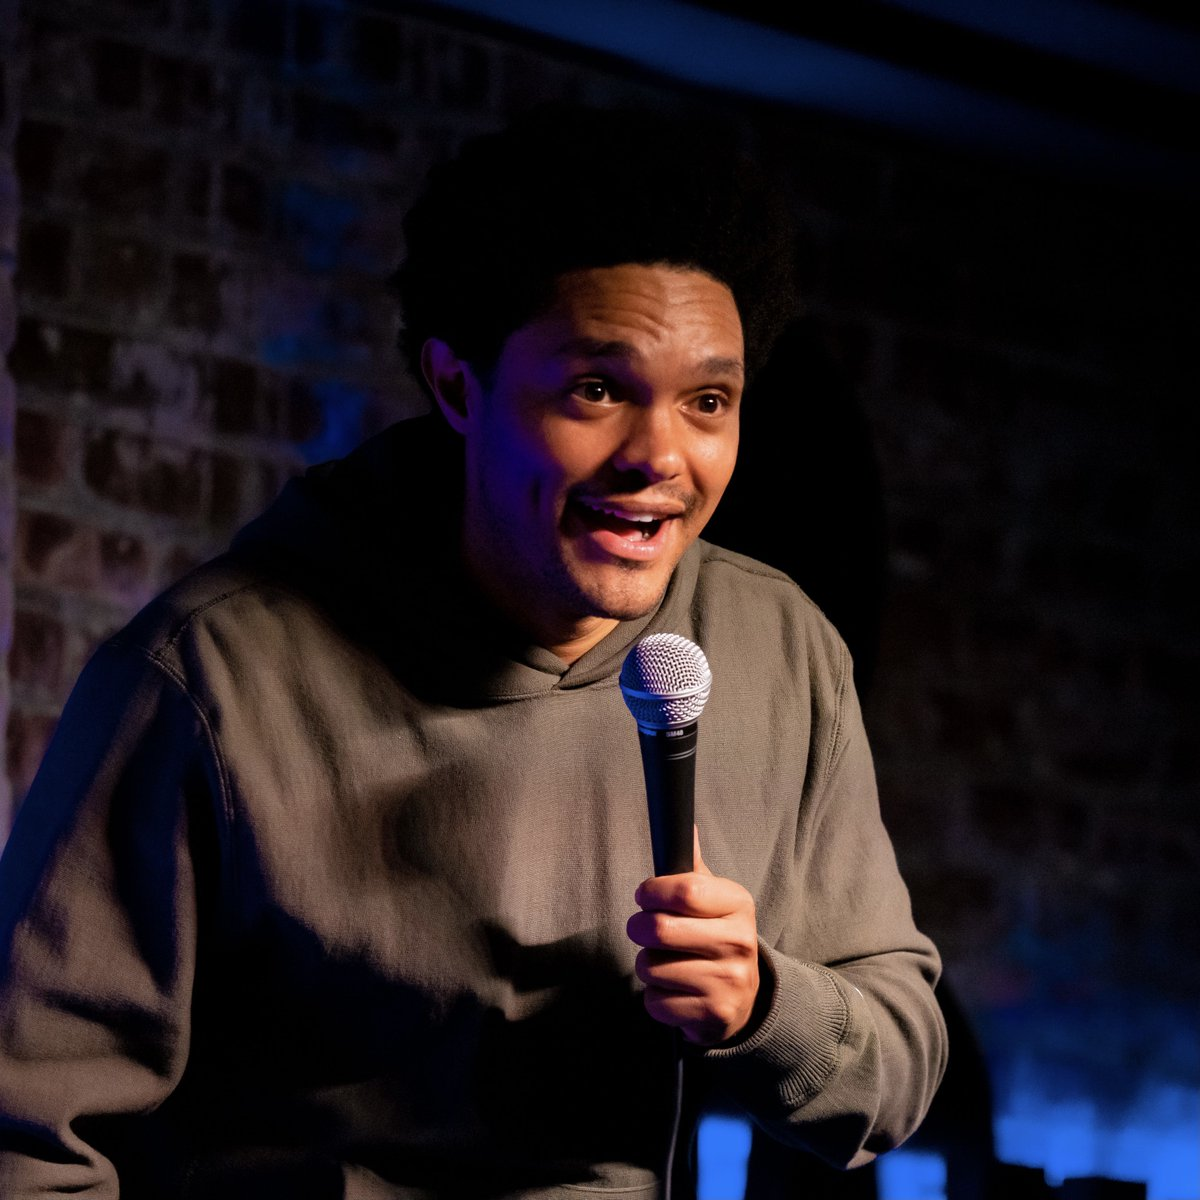 This is me loving being back on stage. This is also me dropping a hint to a much bigger announcement about me being back on stage. More info soon.😎 📷: @mikebryknyc 🎤: @thestandnyc https://t.co/YWASDf2HLd